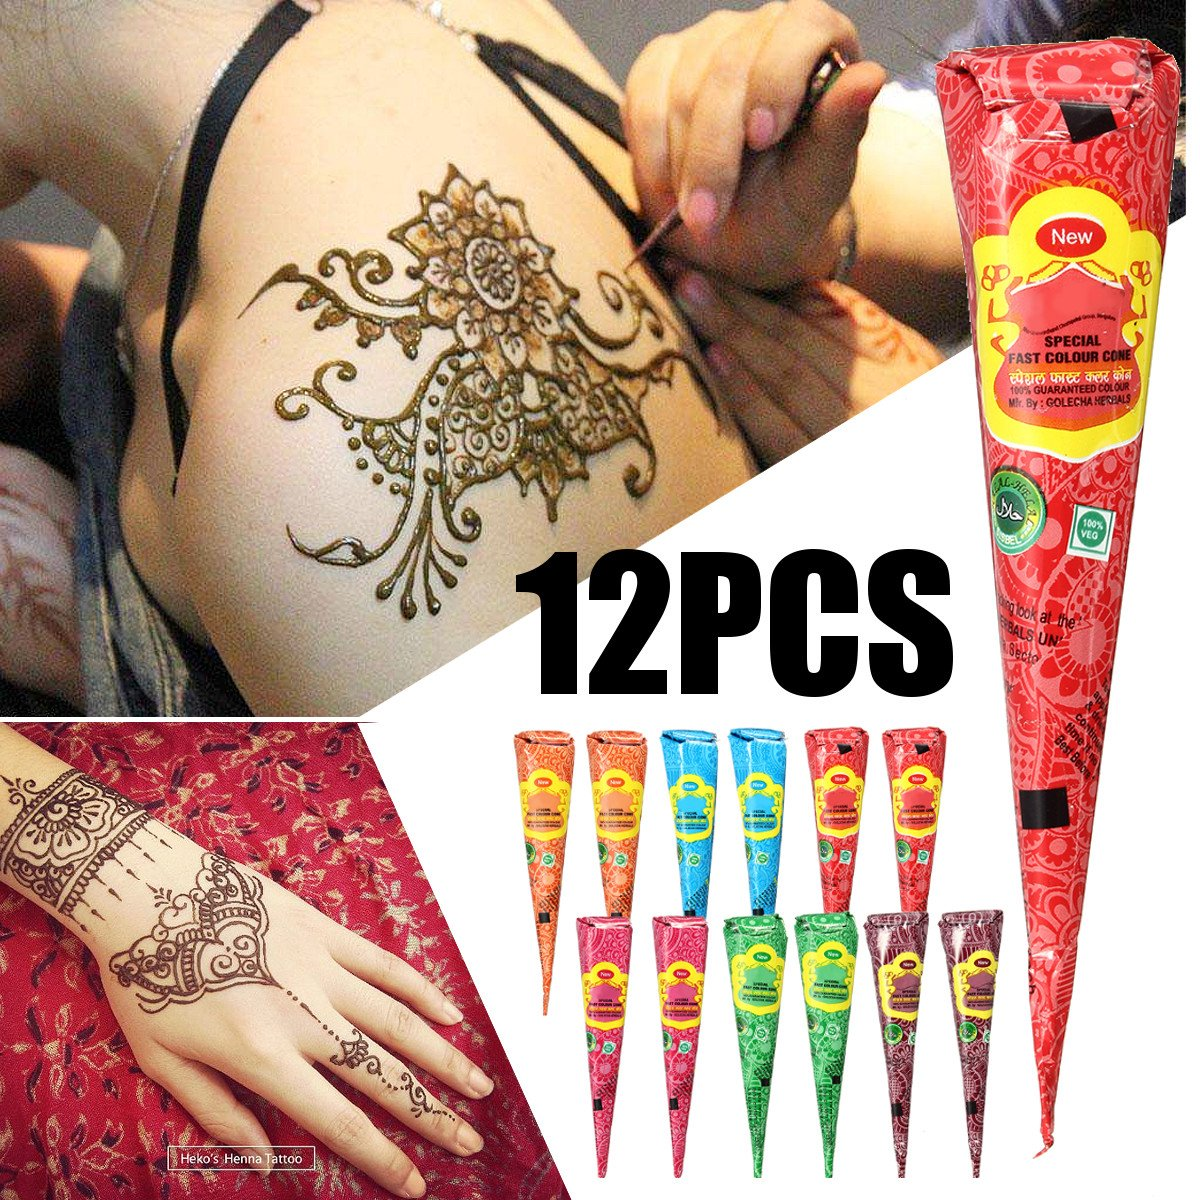 Body Paint, Luckyfine Corpo Colori Set 12 Pezzi Inchiostro Per Body Art Per Tatuaggio Temporaneo a Base Di Erbe Multicolori